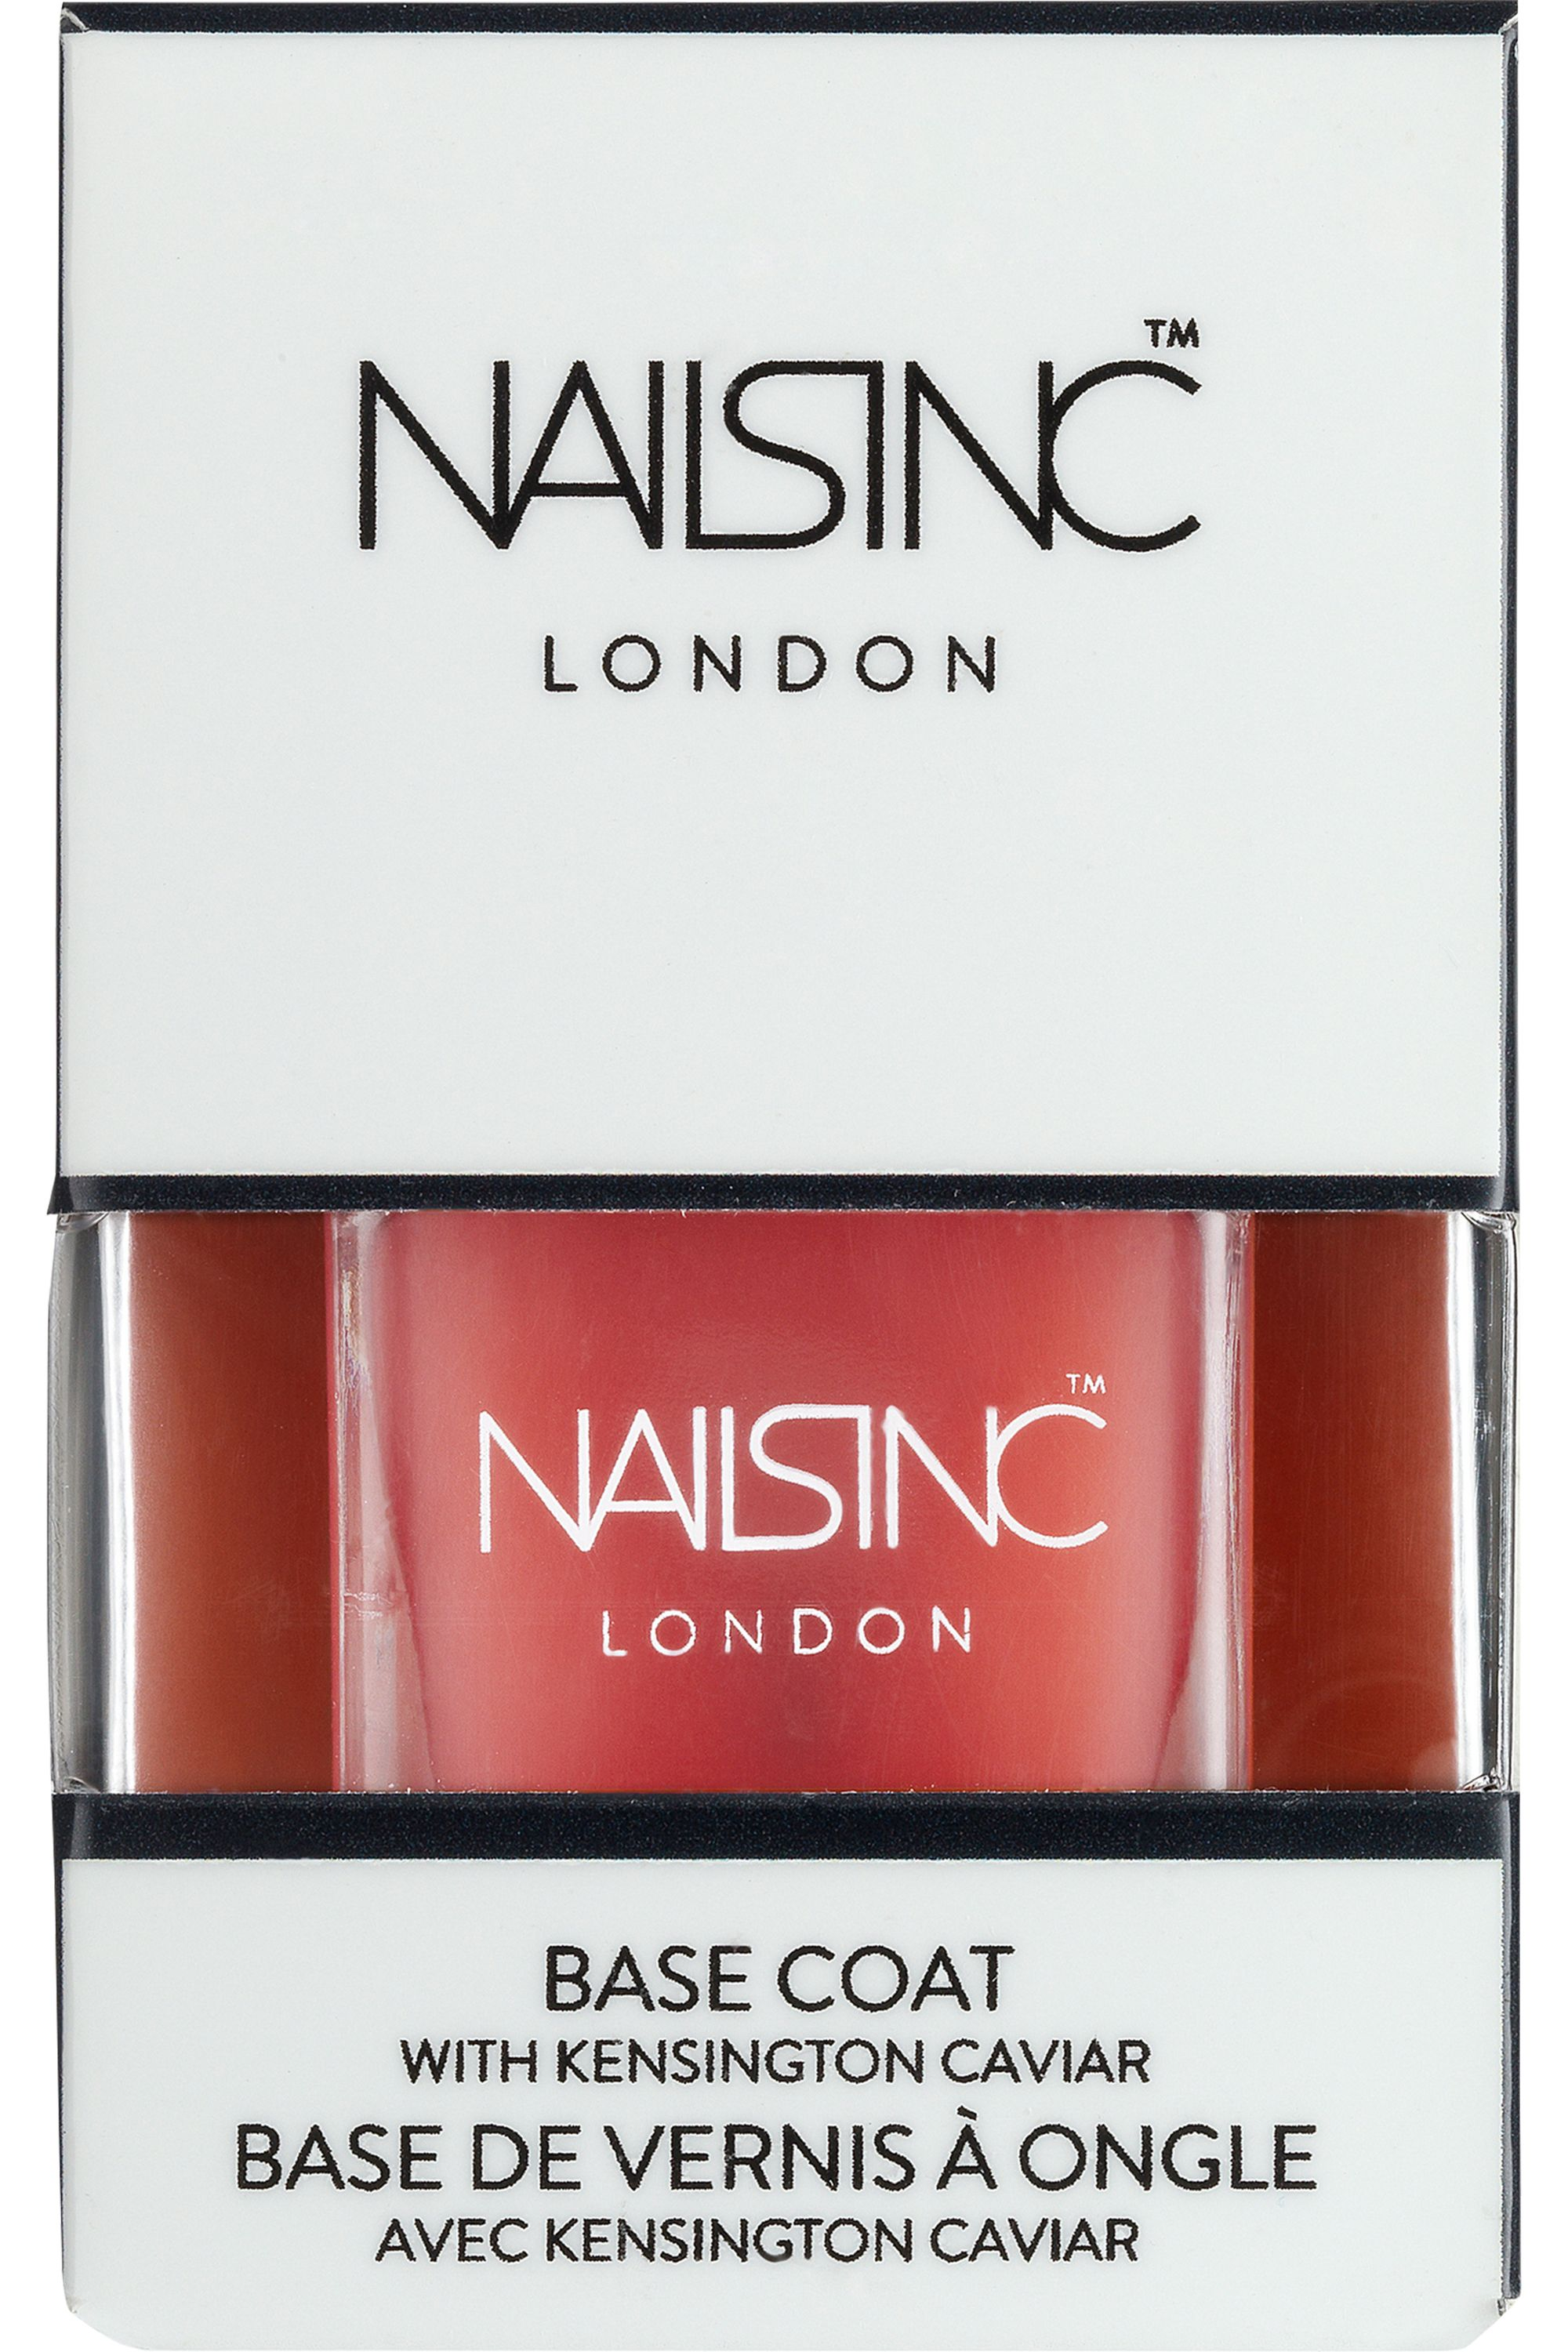 Blissim : Nailsinc - Base Coat with Kensington Caviar - Base Coat with Kensington Caviar